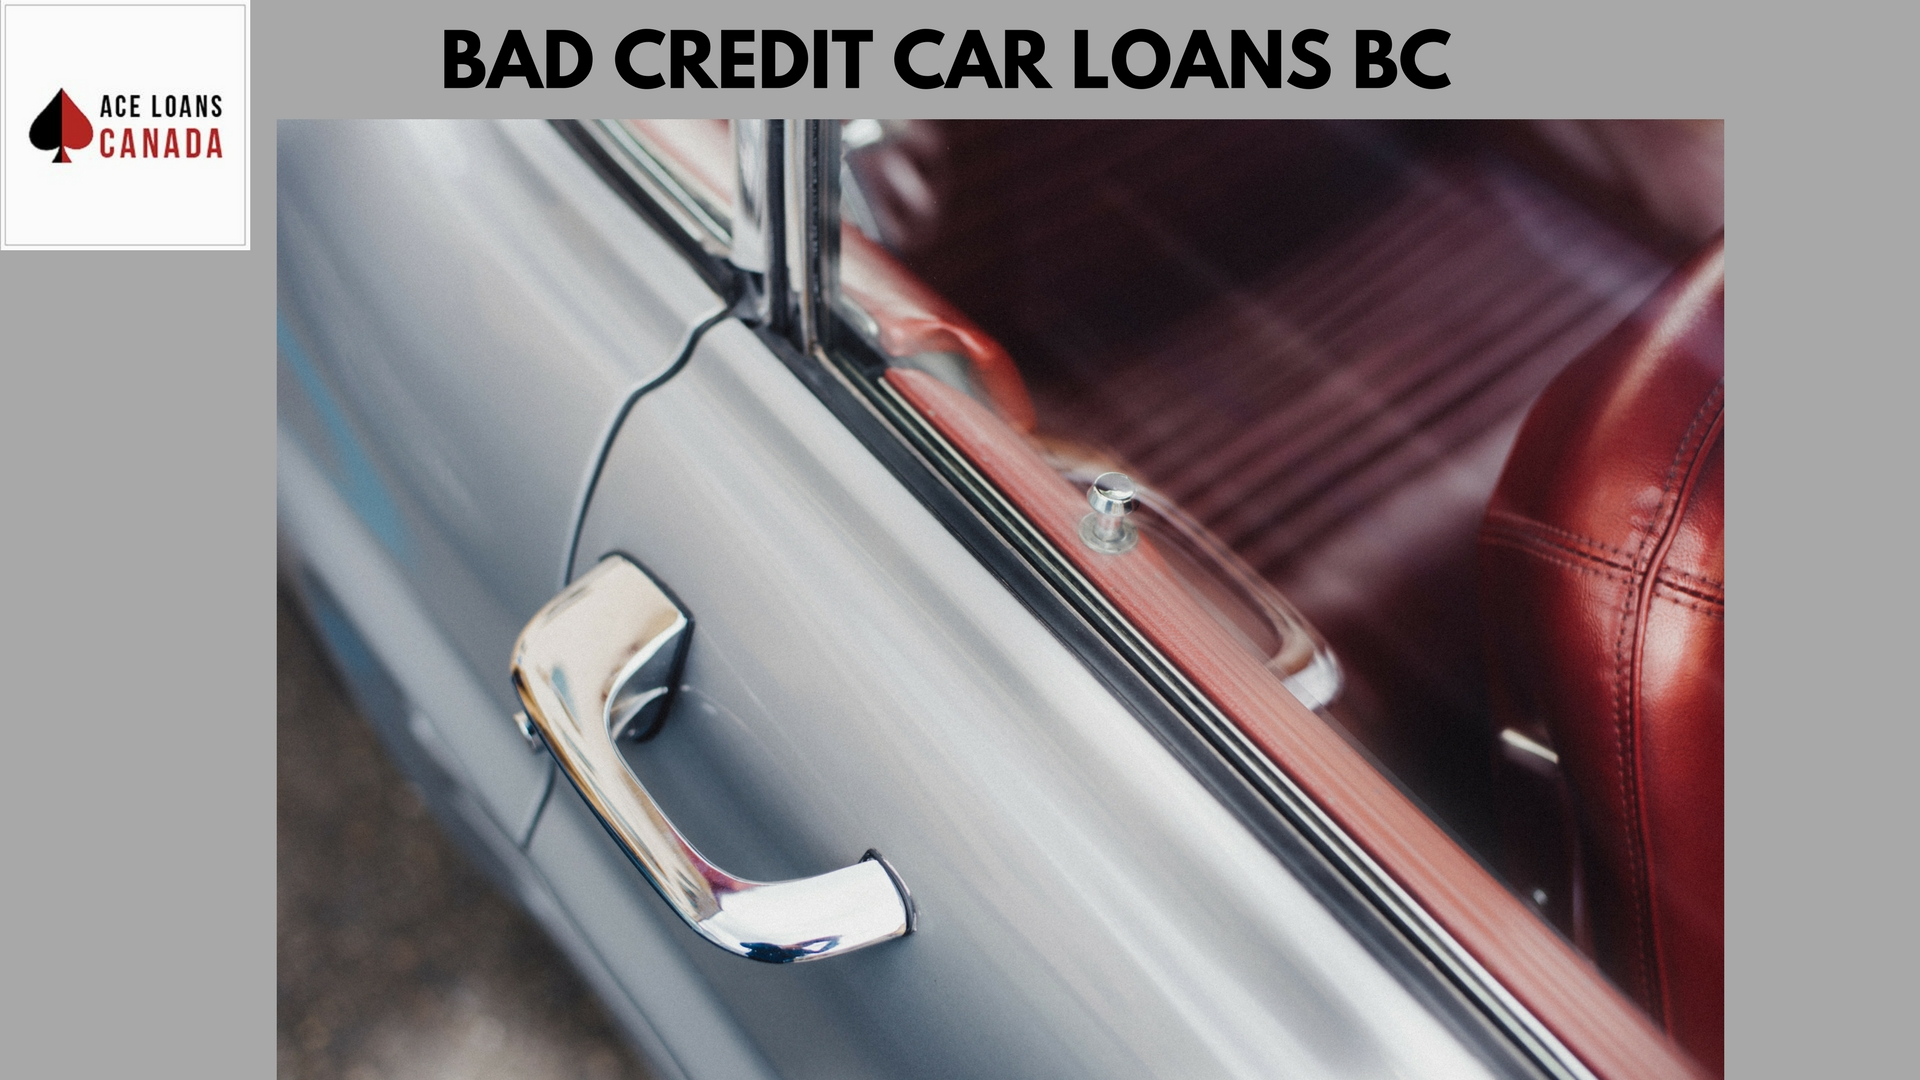 Bad Credit Car Loans BC